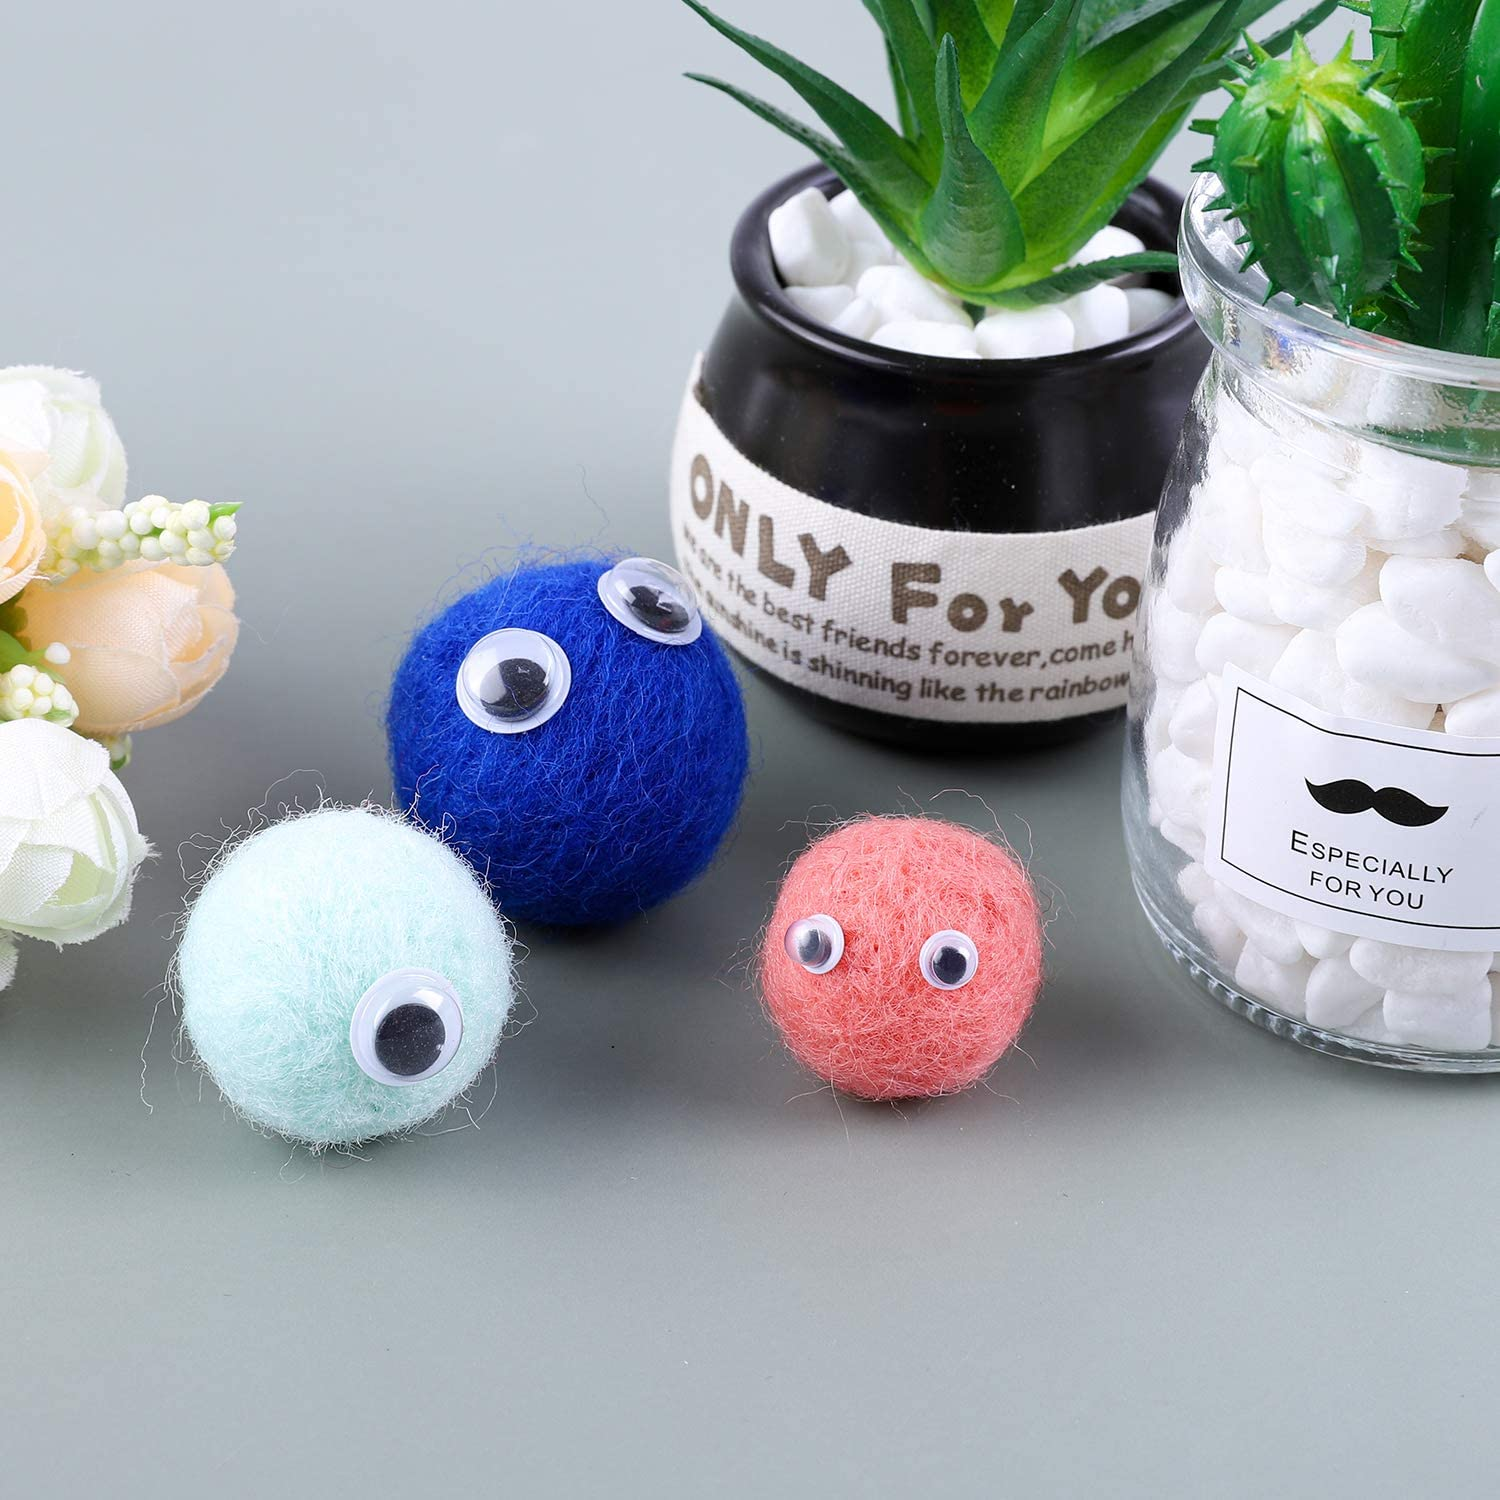 Elcoho 500 Pieces Crafts Wiggle Eyes Googly Eyes Self Adhesive Toys Wiggle Eyes for DIY or Festival Craft Accessories Assorted Sizes from 6-15 mm